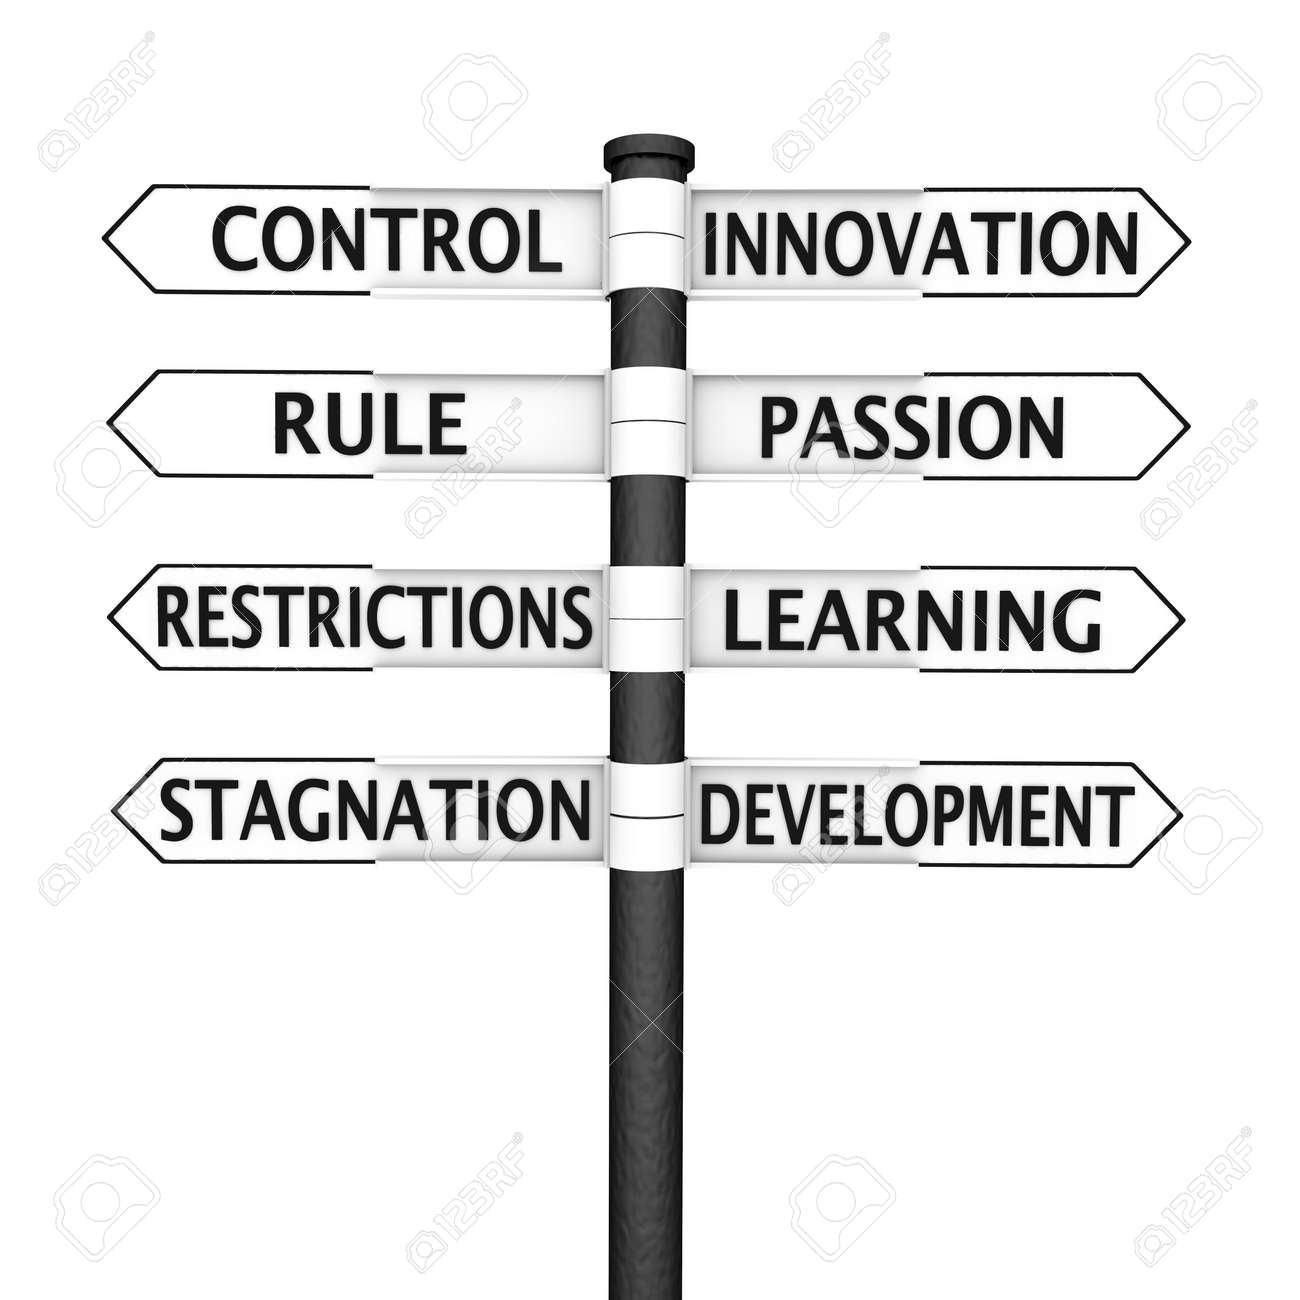 Crossroads sign with Innovation related content pointing in one direction and control related in the opposite direction Stock Photo - 11868663